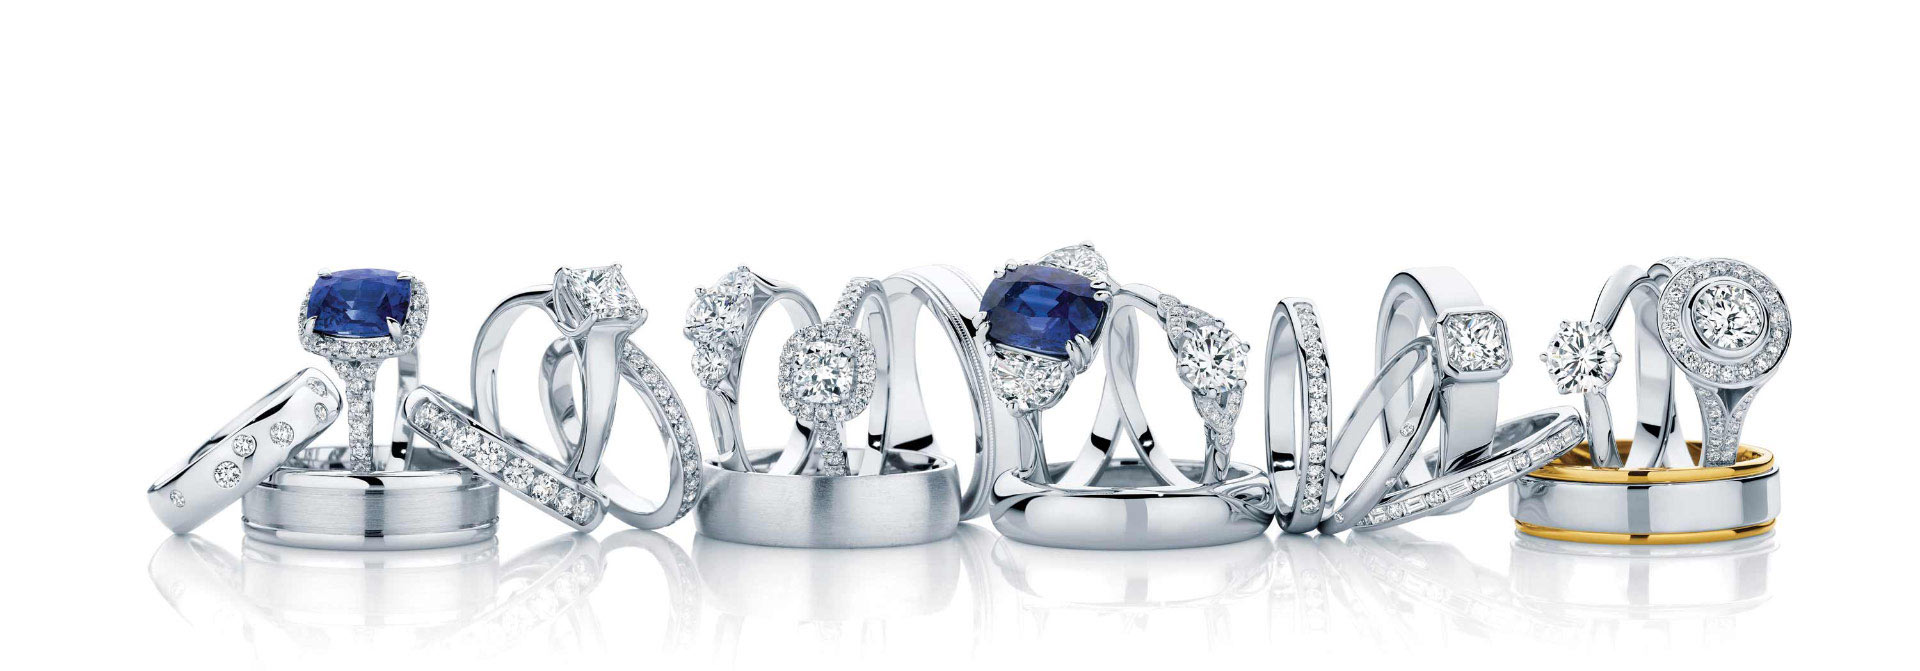 Here Are 6 Alternative Gem Rings for Your Fiance